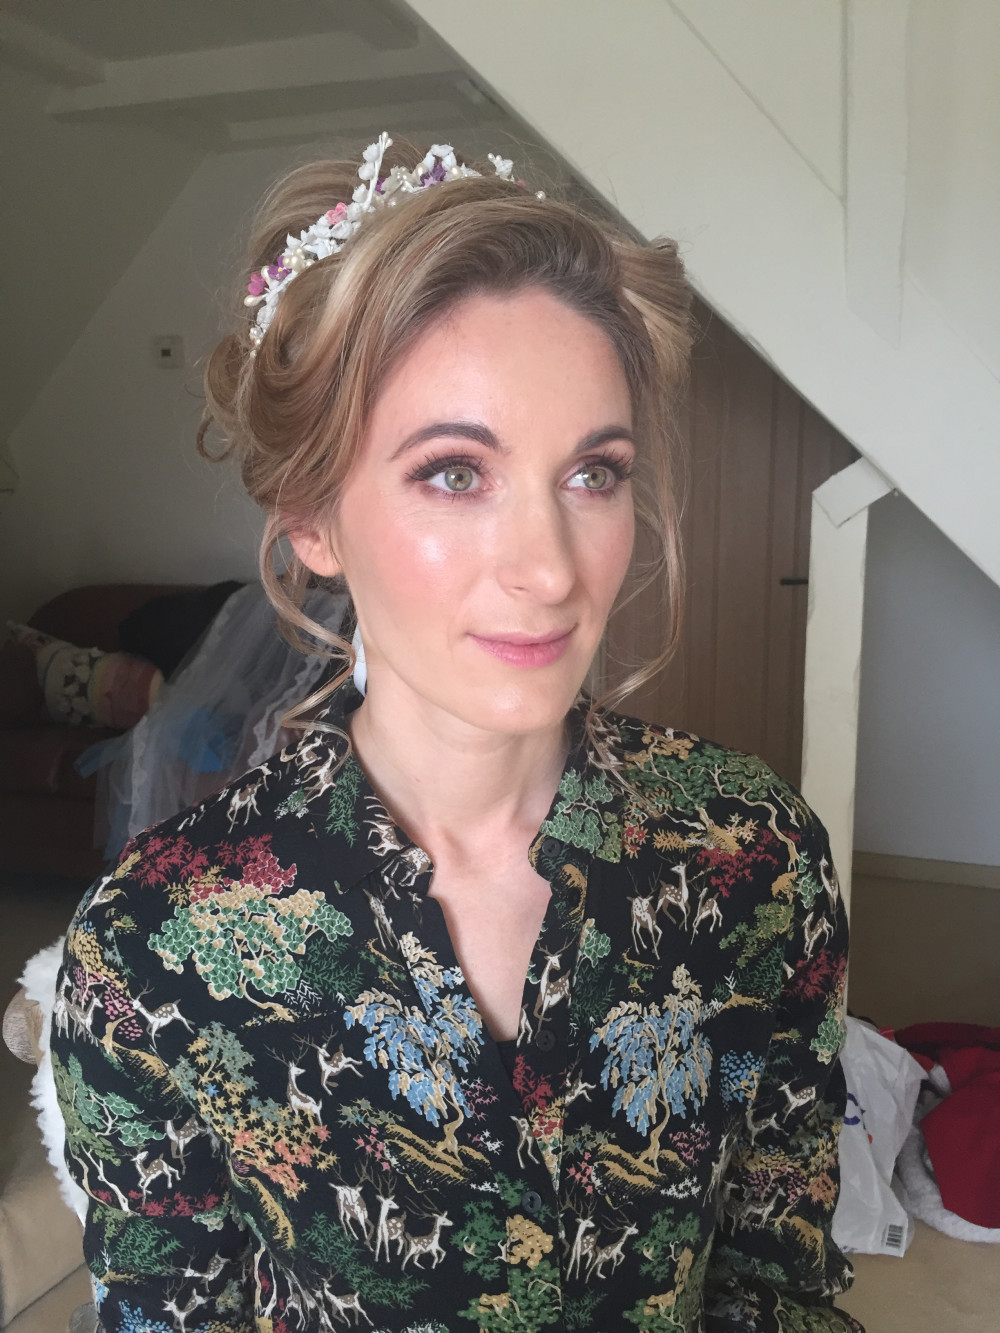 Soft bronze smokey eyes and glowing skin for this beautiful bride. - Make Me Bridal Artist: Neecol Corry Weddings. #classic #naturalmakeup #bridalmakeup #beautifulbridalmakeup #glowingskin